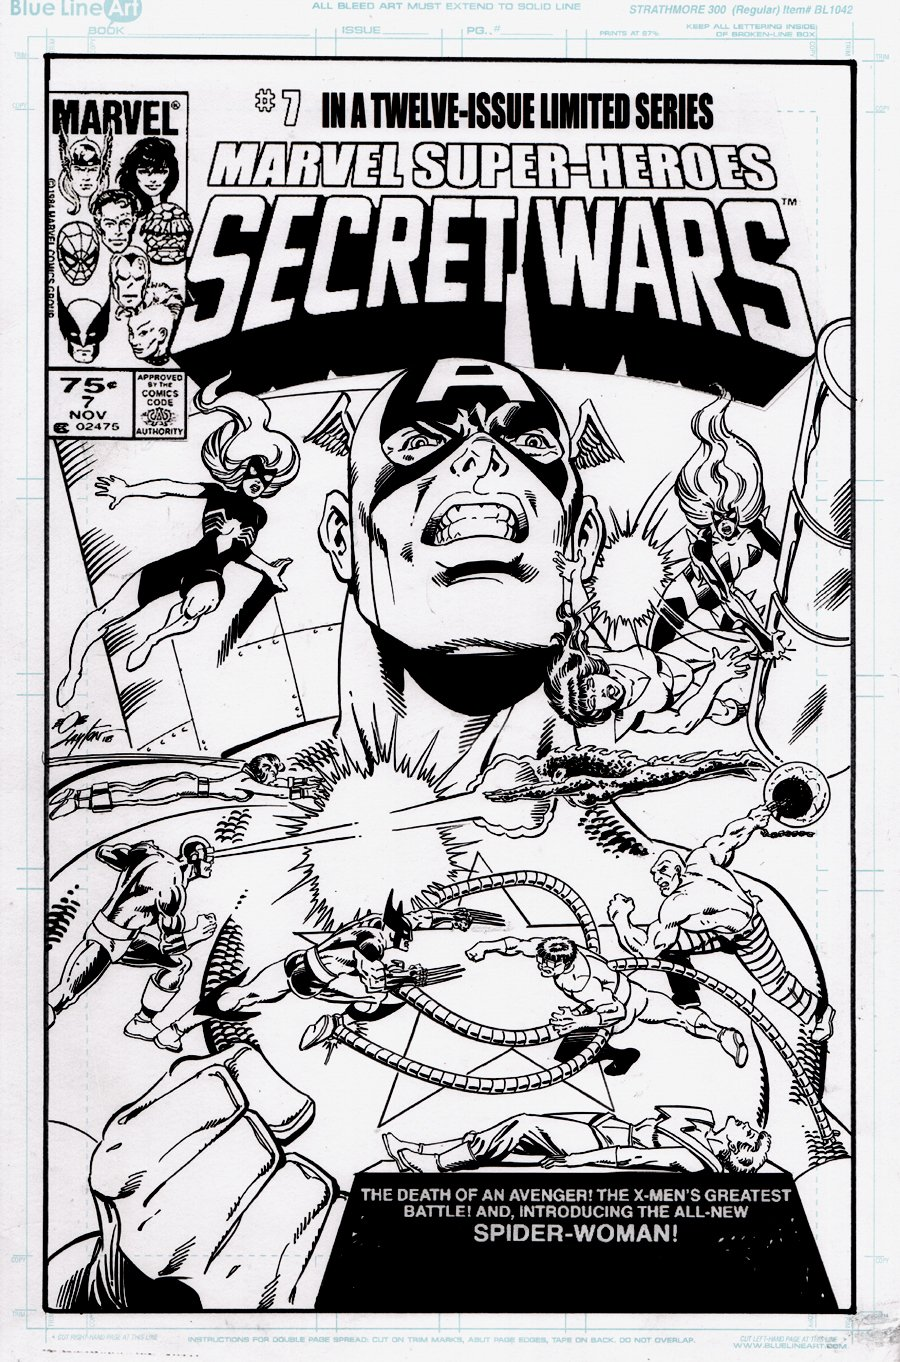 Marvel Super-Heroes Secret Wars #7 Cover Recreation